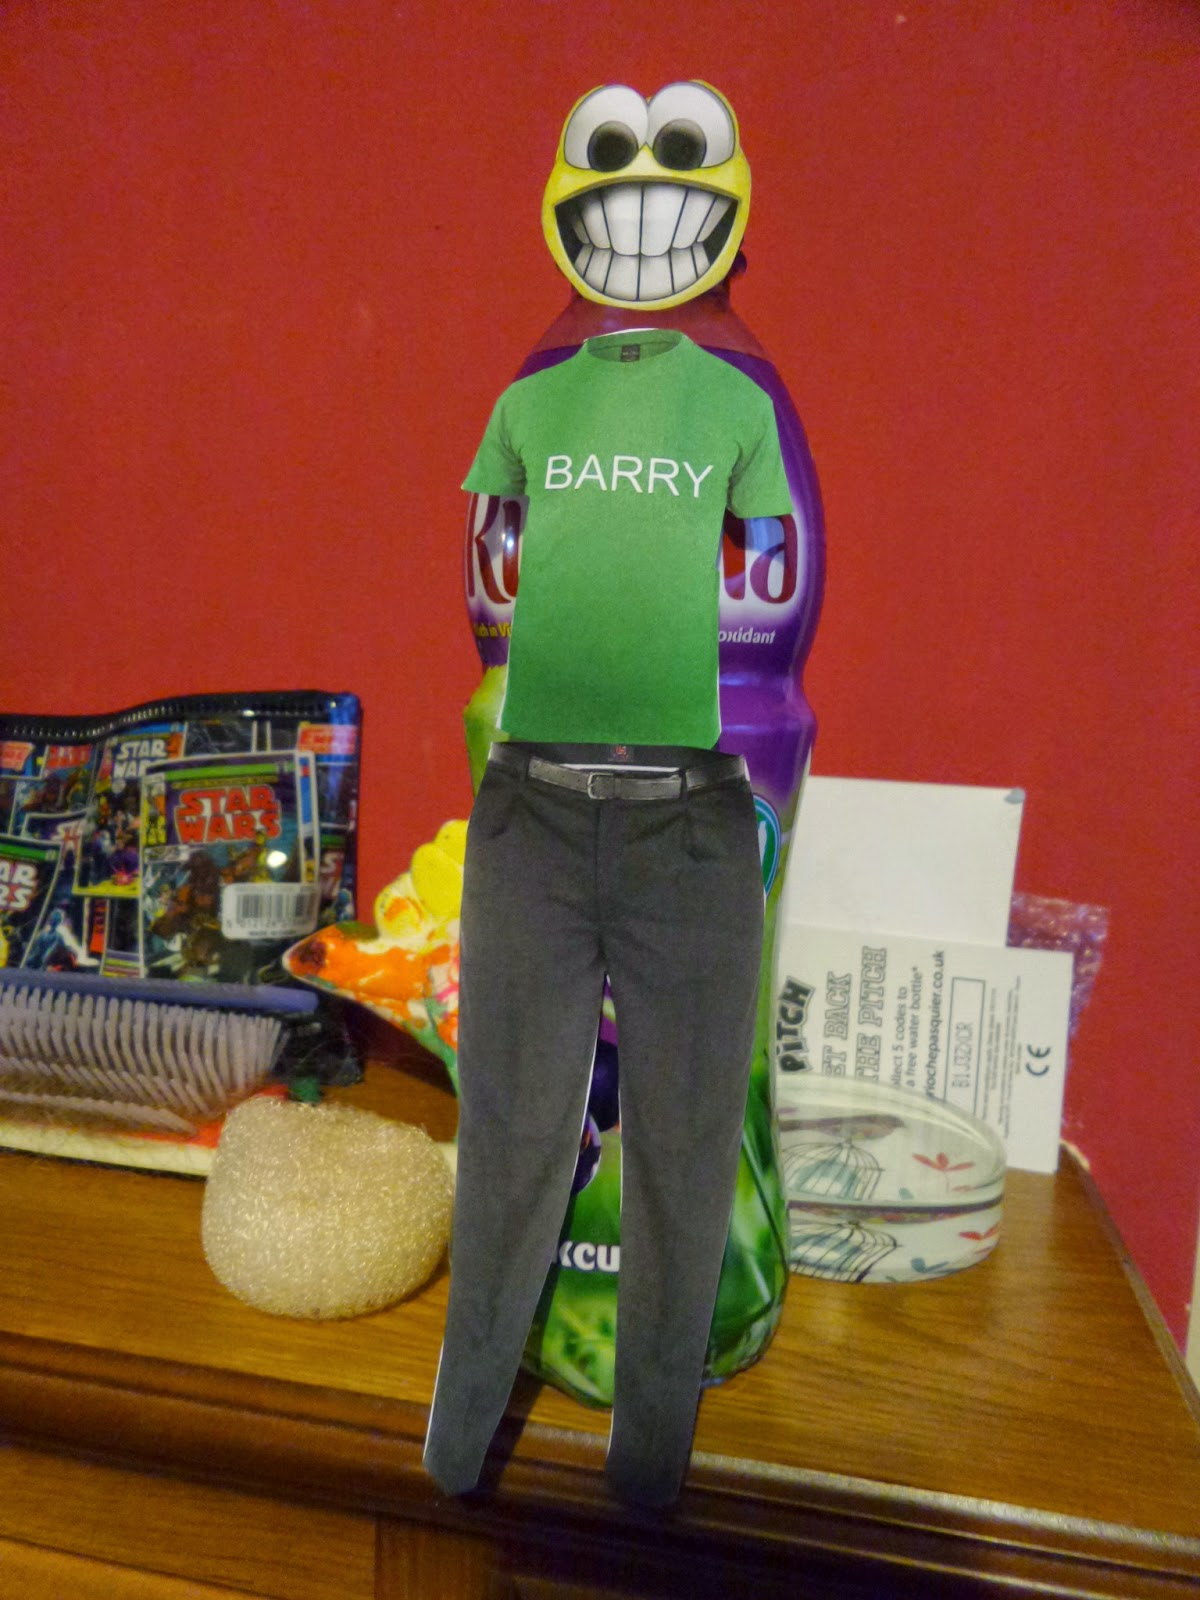 Barry the bottle of Ribena